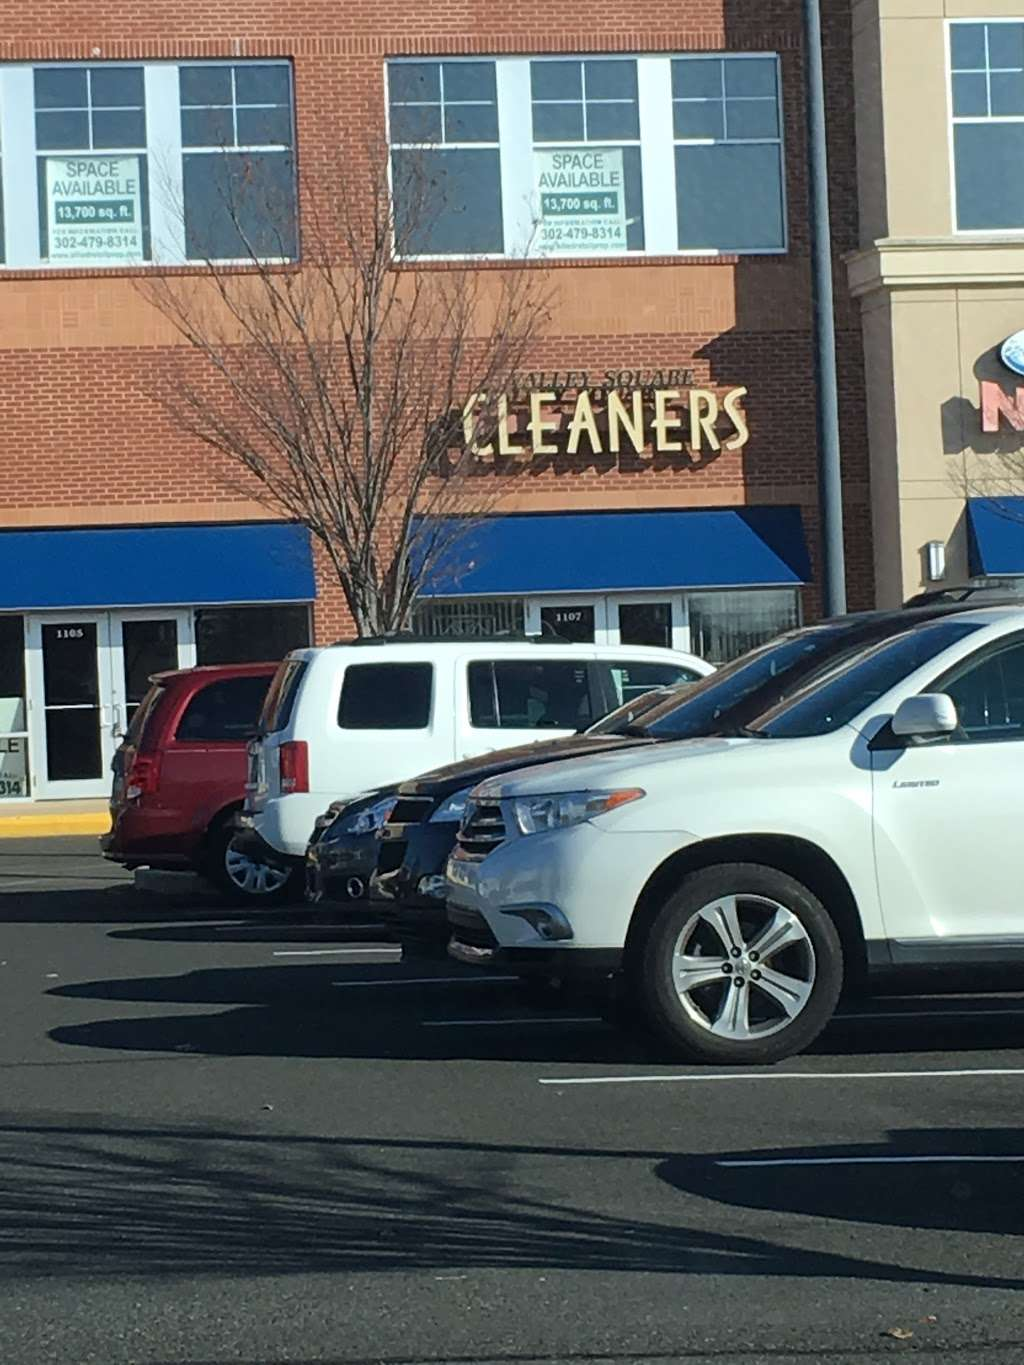 Valley Square Cleaners - laundry    Photo 2 of 2   Address: 1107 N Main St, Warrington, PA 18976, USA   Phone: (215) 491-1451